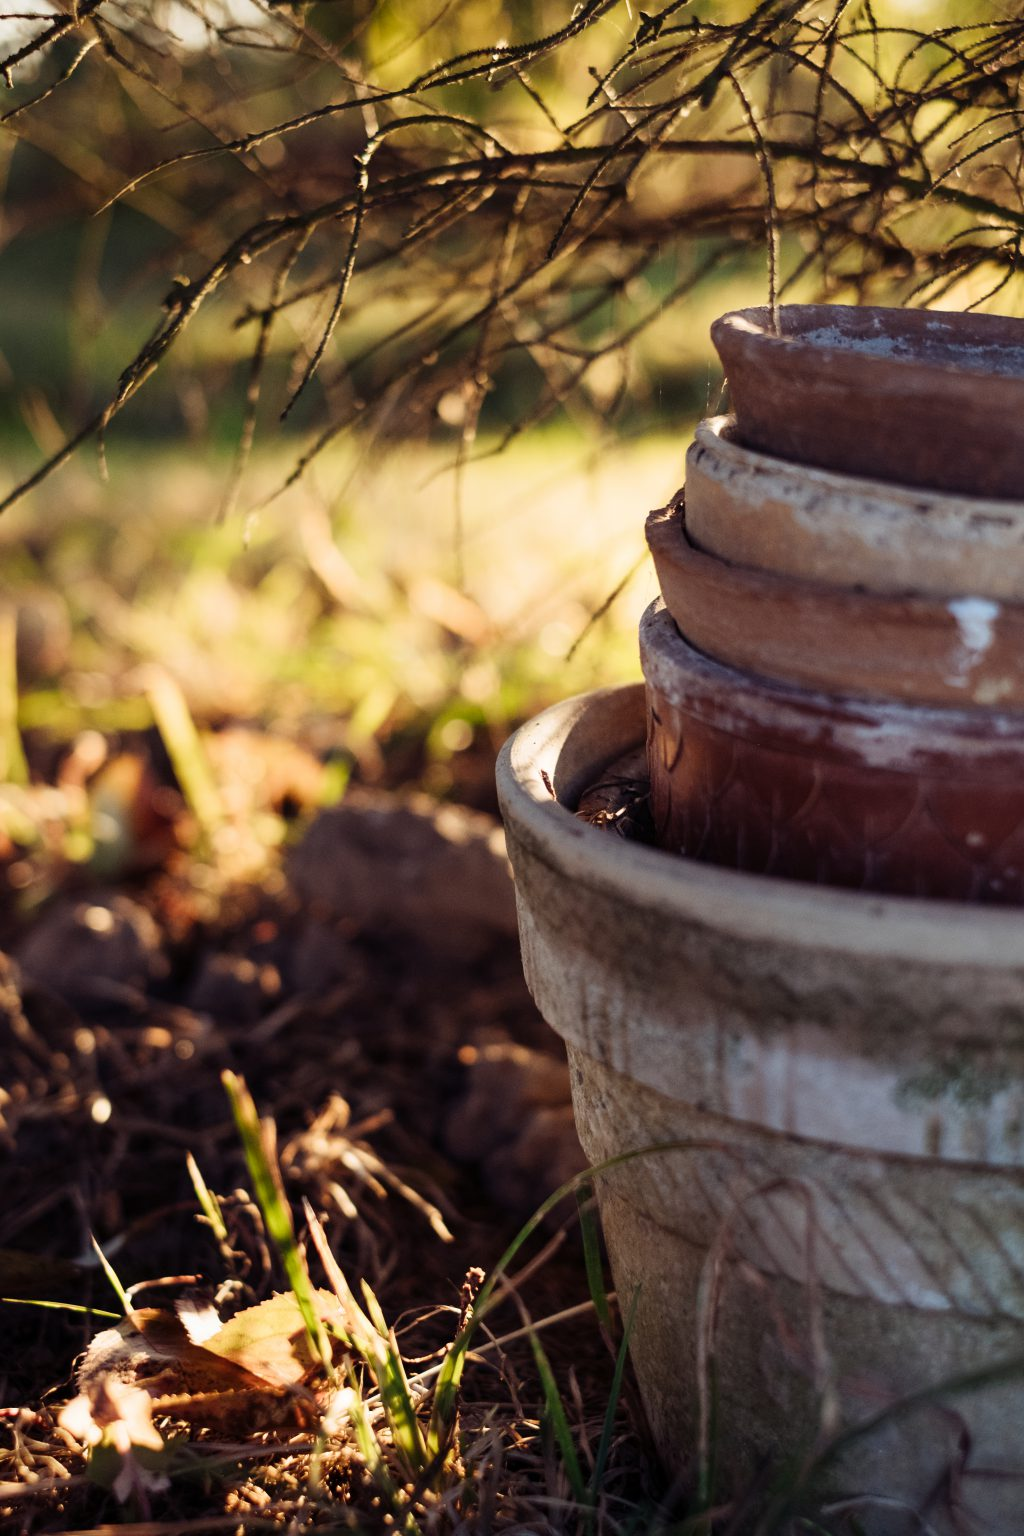 Old clay flower pots 2 - free stock photo